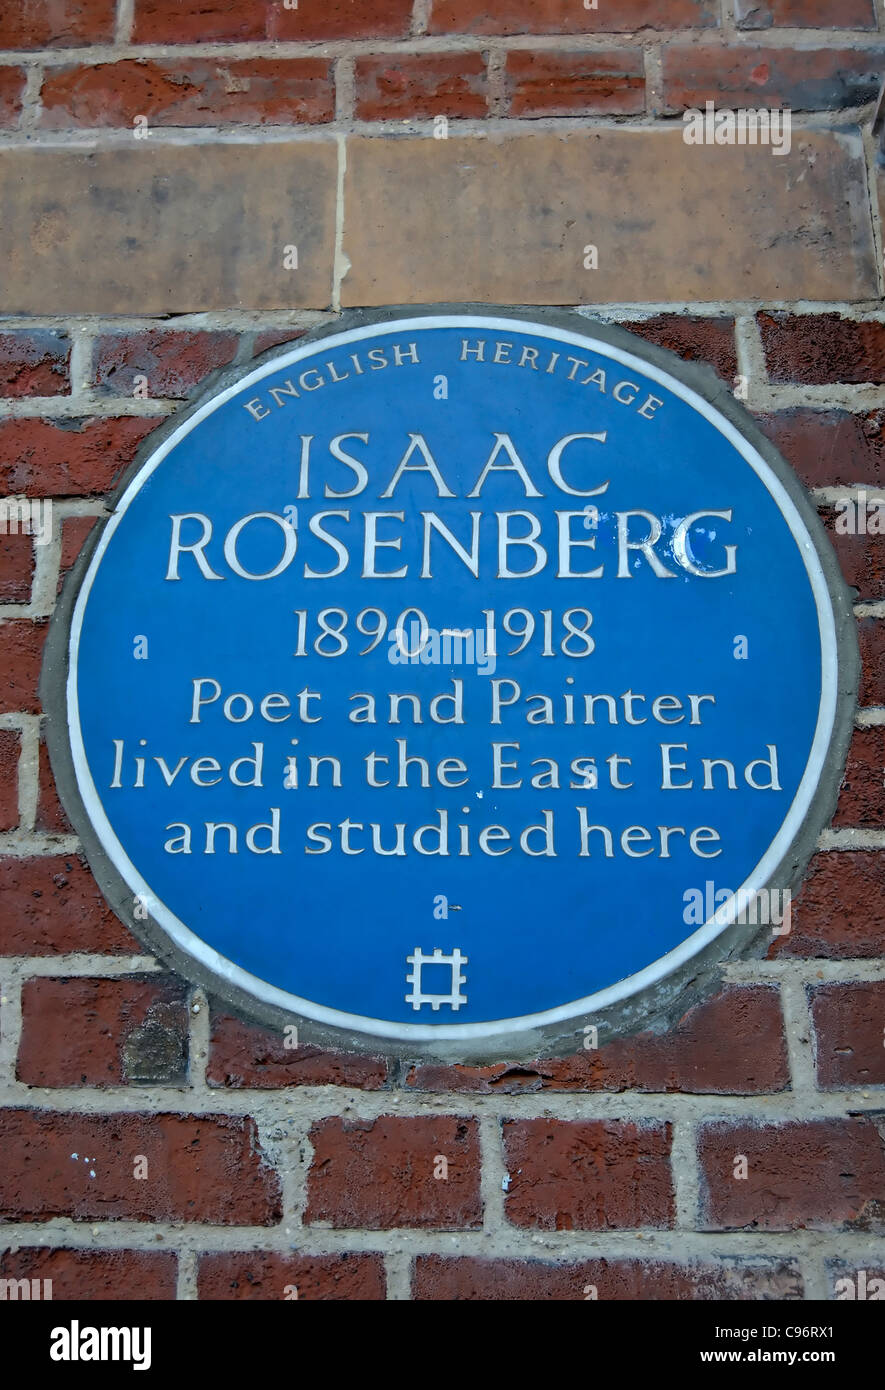 english heritage blue plaque commemorating poet and painter isaac rosenberg and his links with london's east - Stock Image